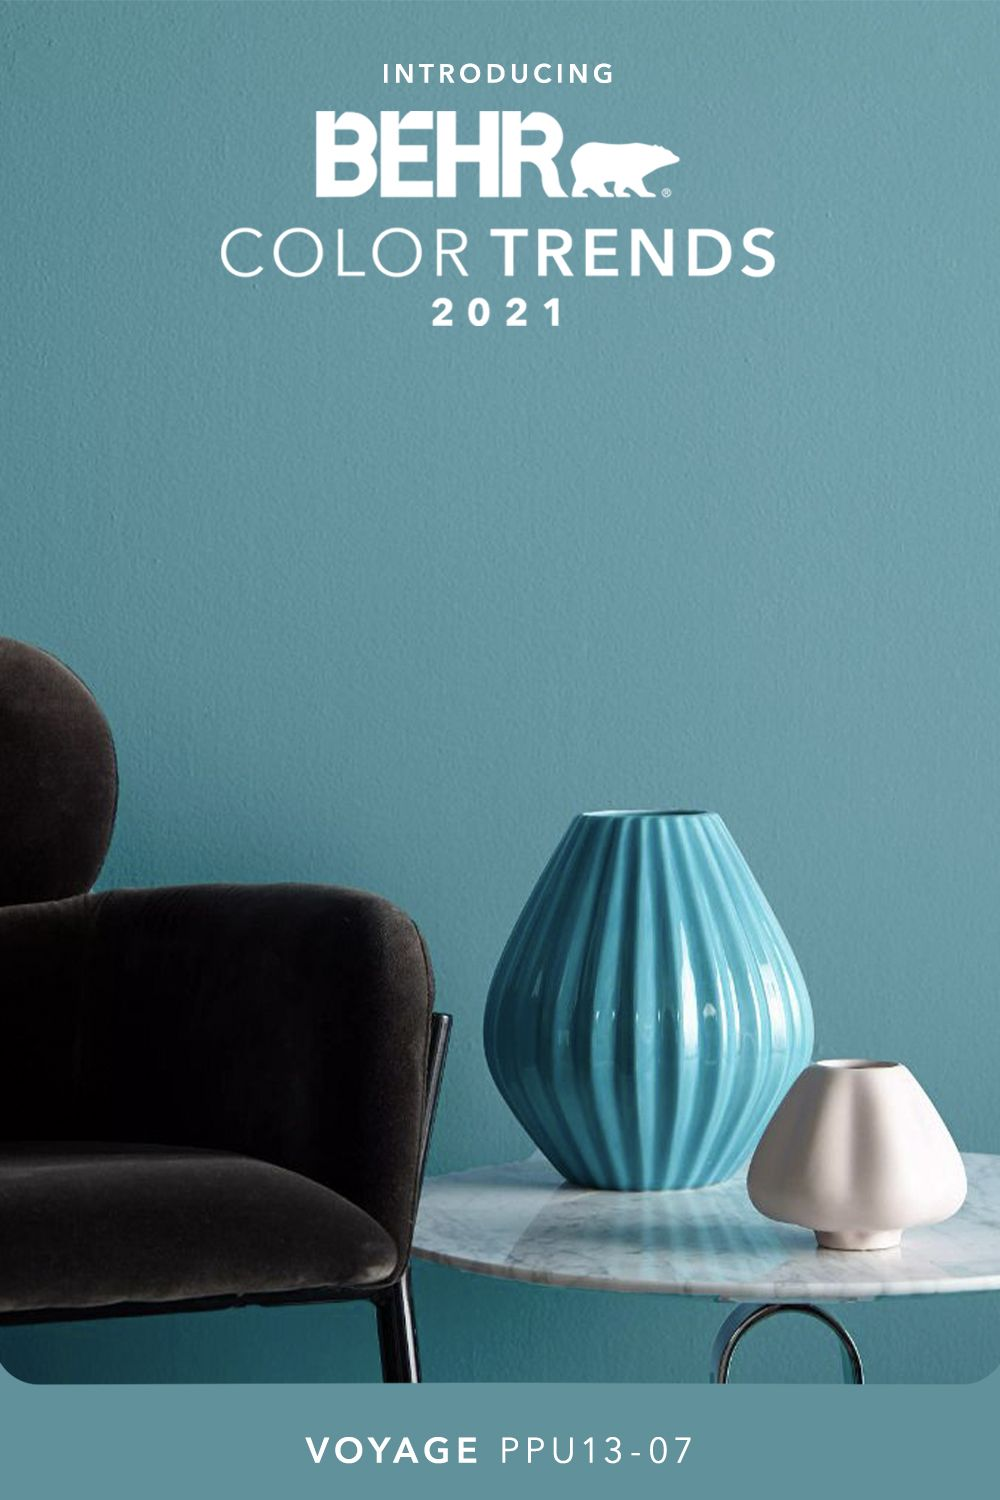 voyage ppu13 07 behr color trends 2021 palette in 2020 on wall colors for 2021 id=95373